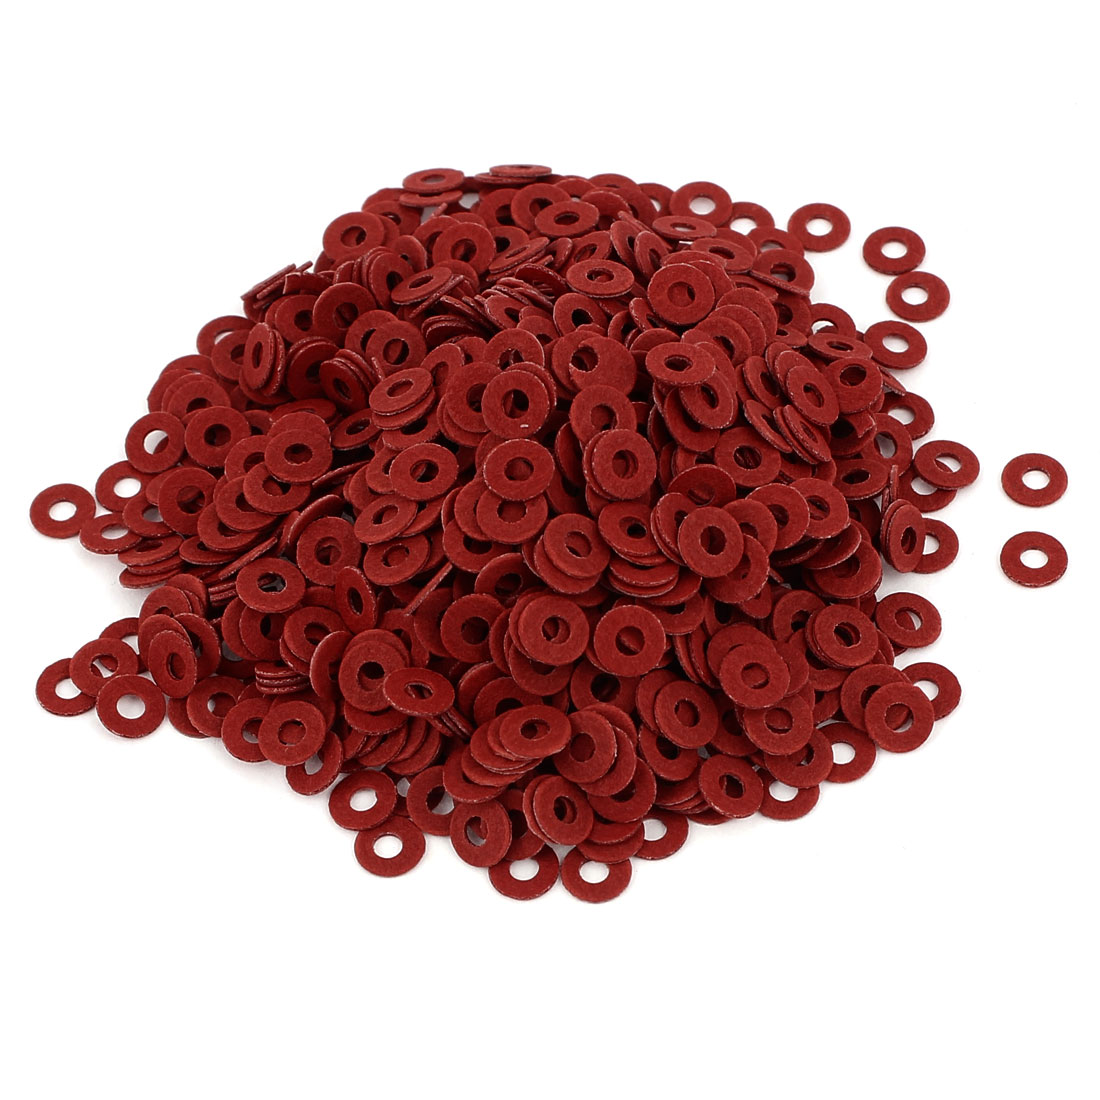 Fiber Flat Insulating Washer Ring 2mmx5mmx0.5mm 1000Pcs Red for Screws